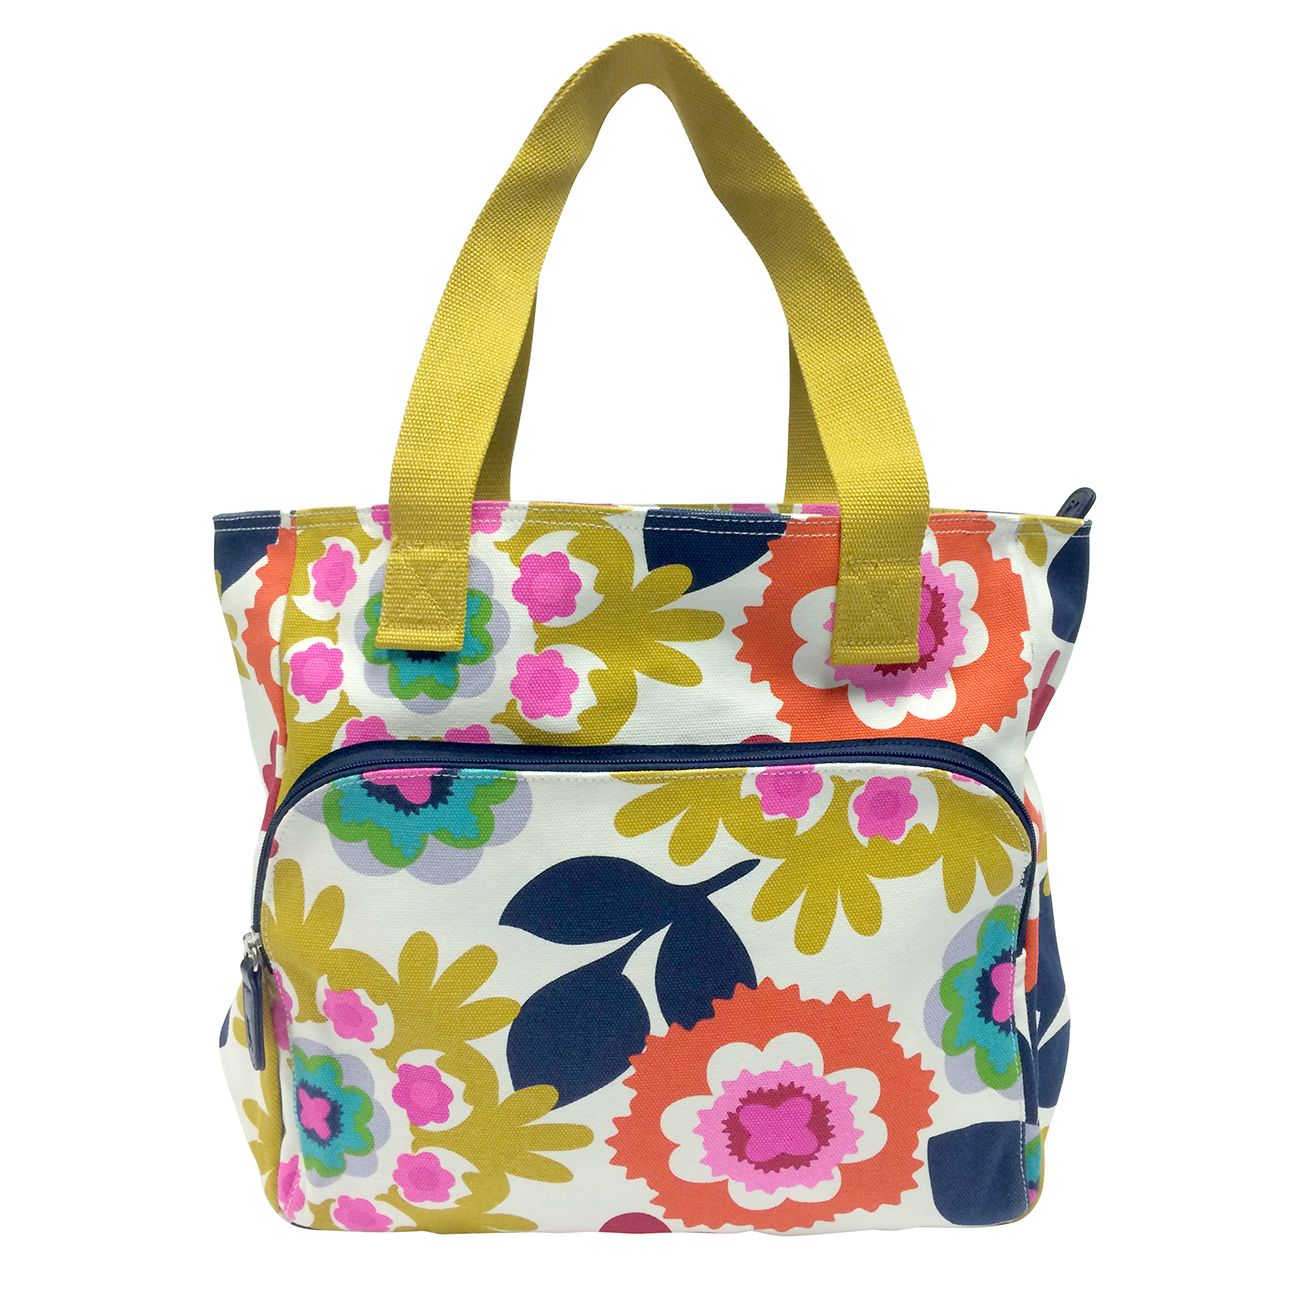 French Bull Yoga Bag In SUS Print. Available At Target